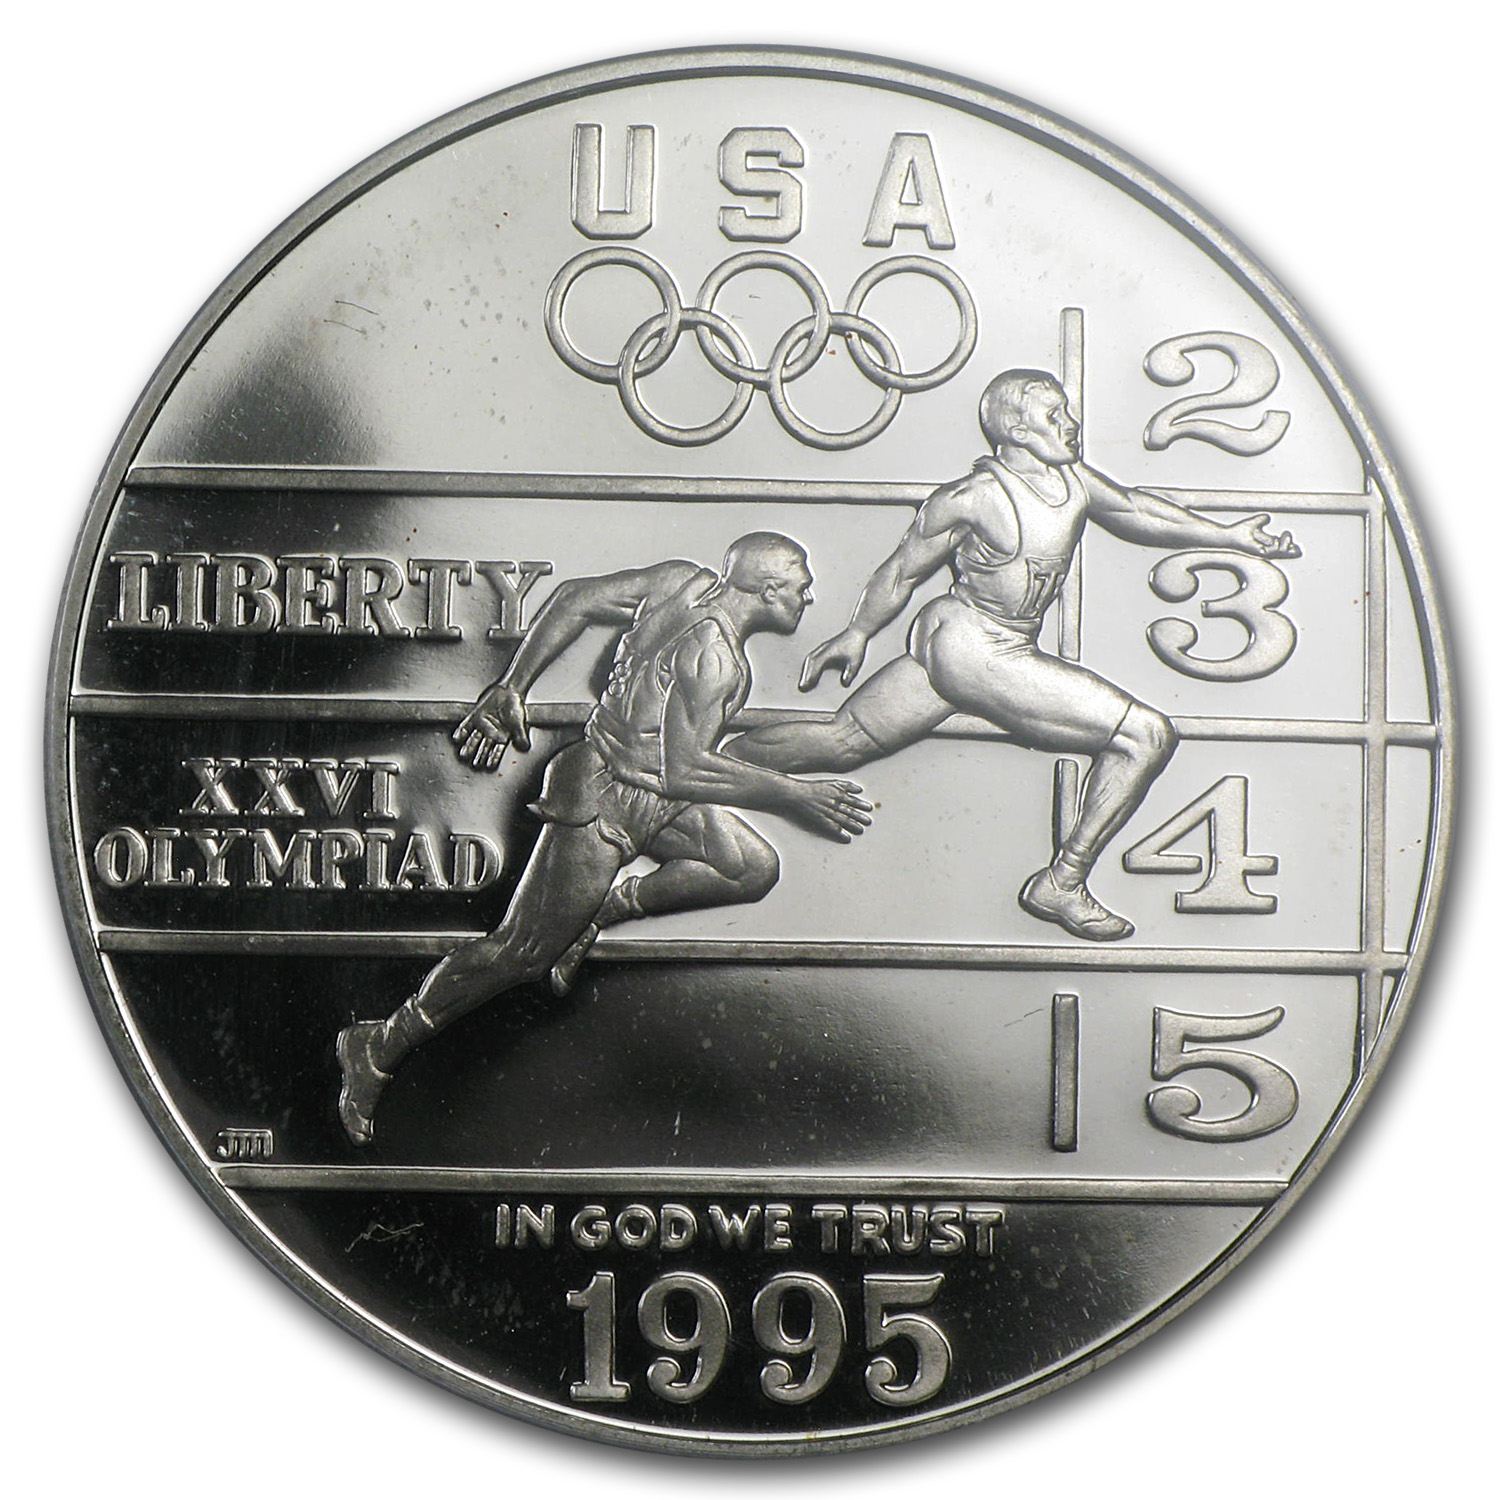 1995-P Olympic Track and Field $1 Silver Commem PR-69 PCGS